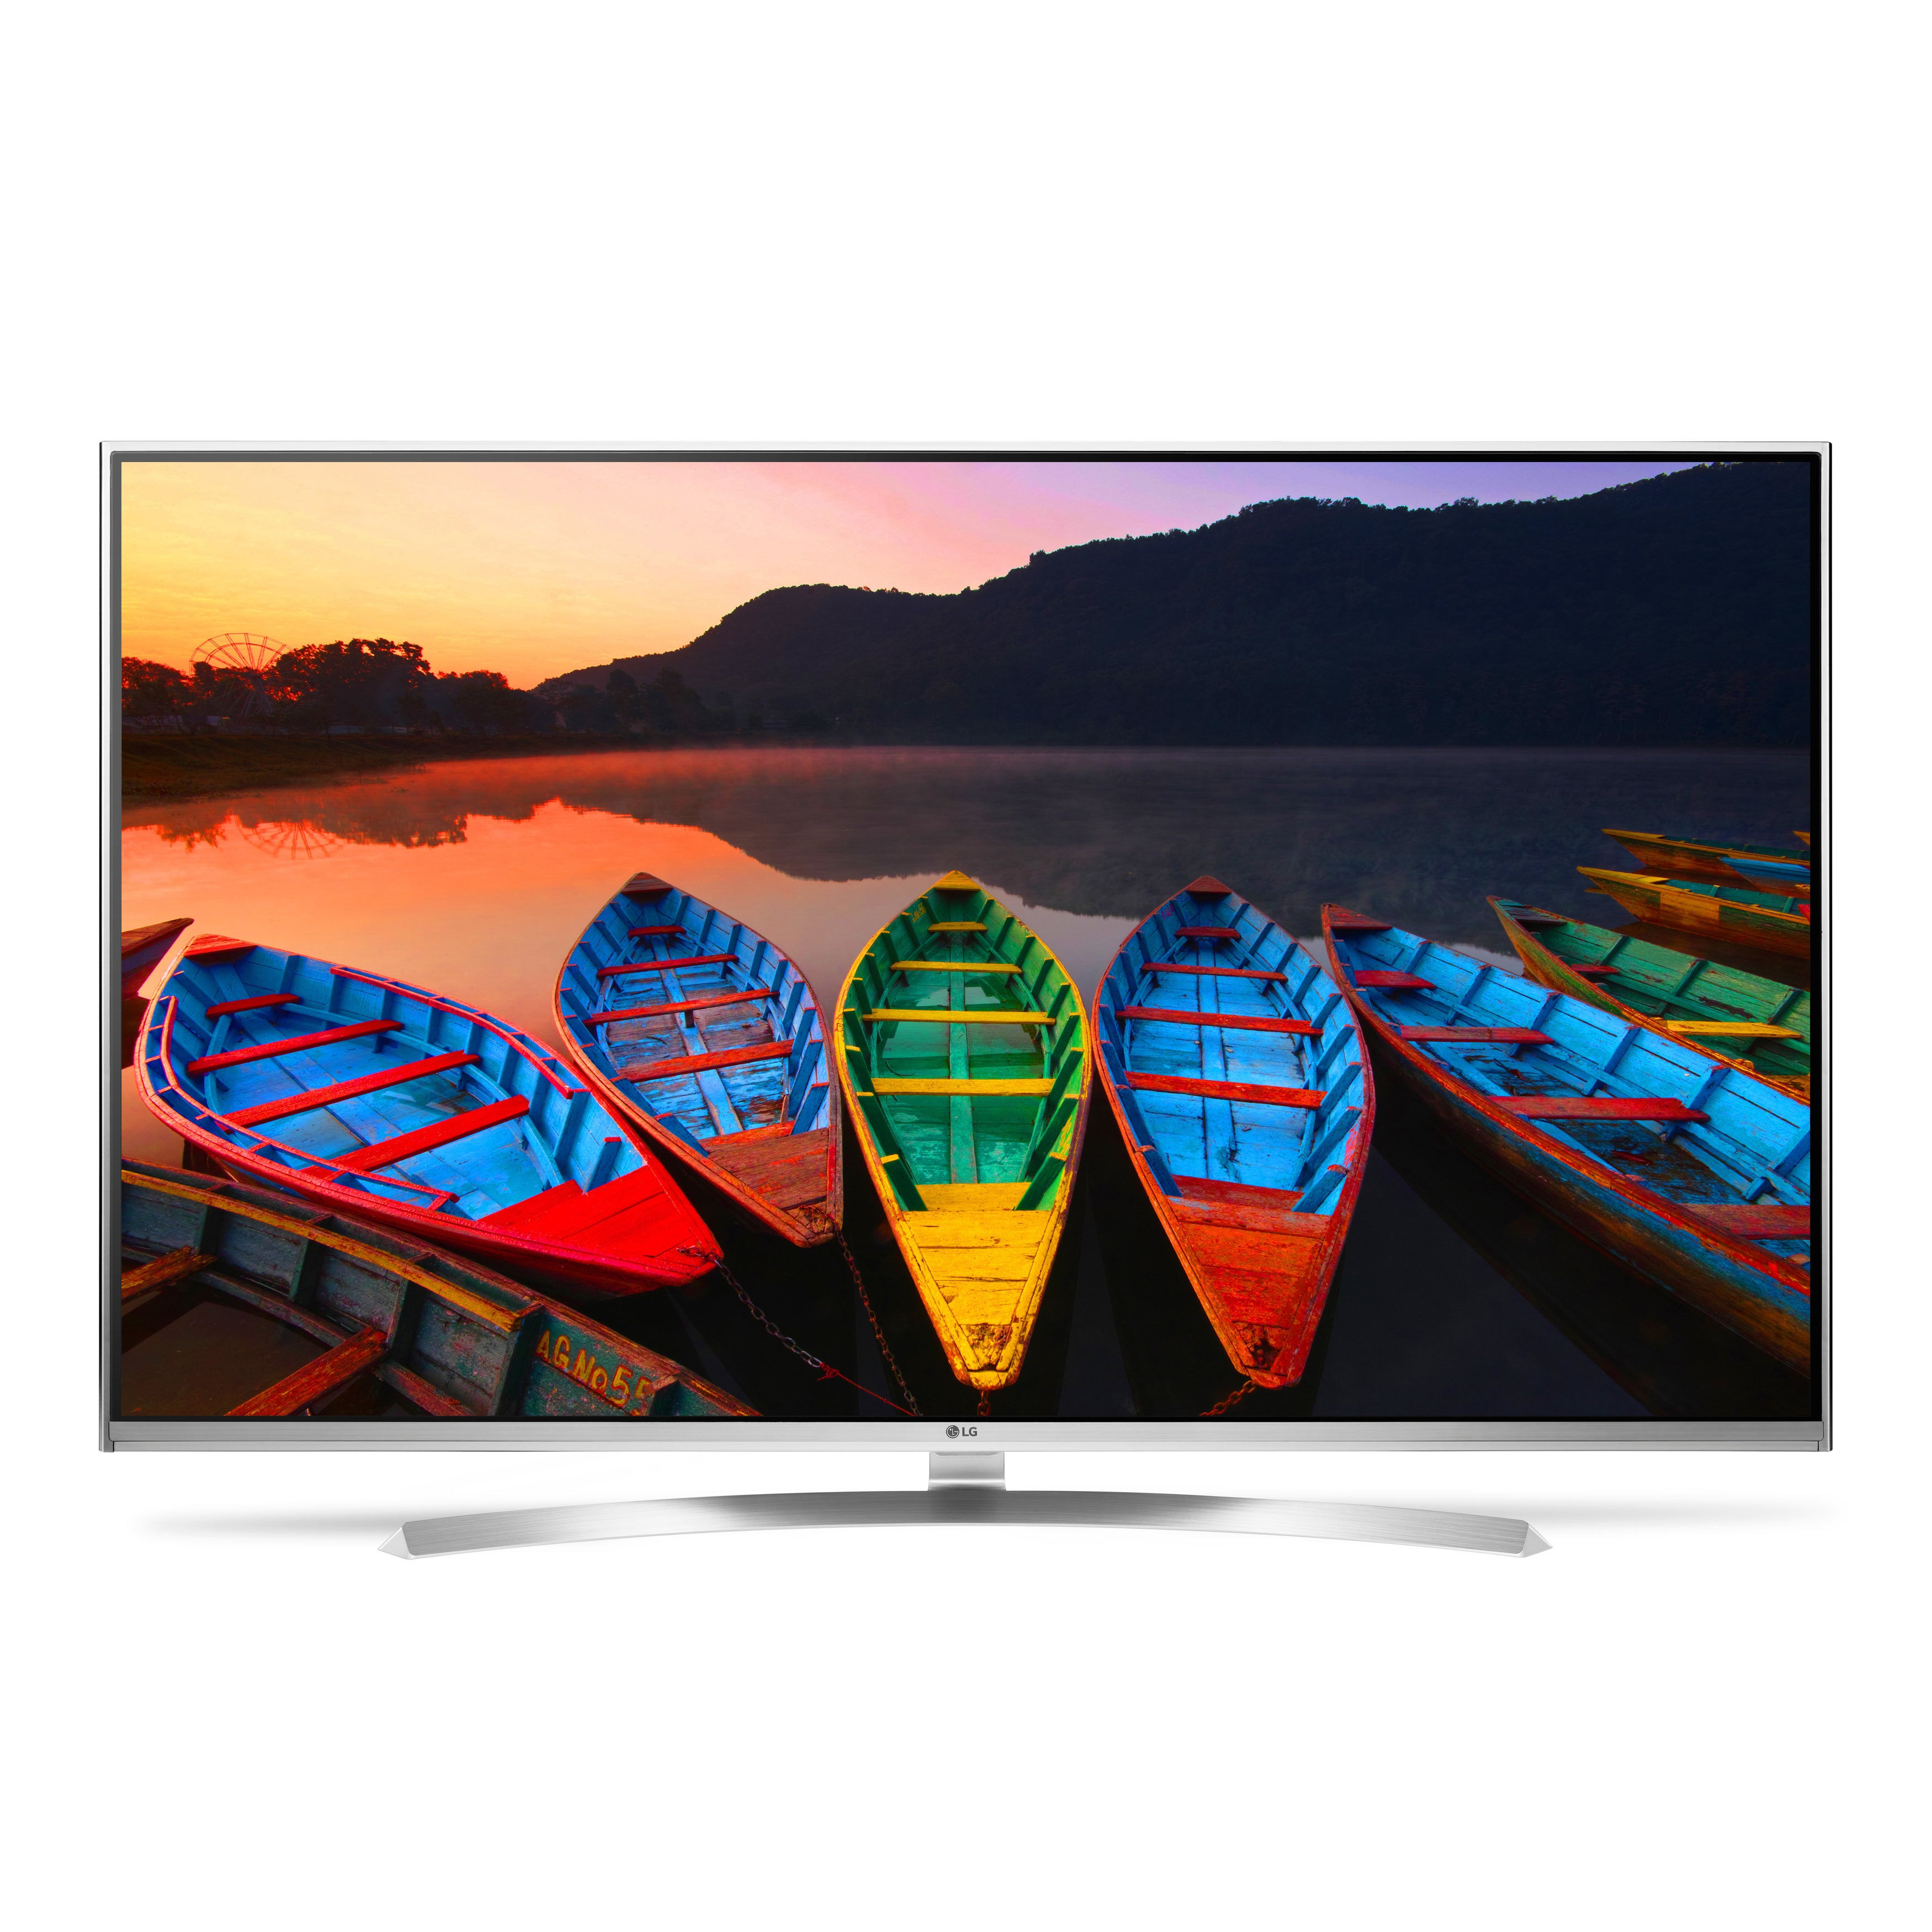 LG 60UH8500 60-inch Class 4K Super UHD LED Television wit...